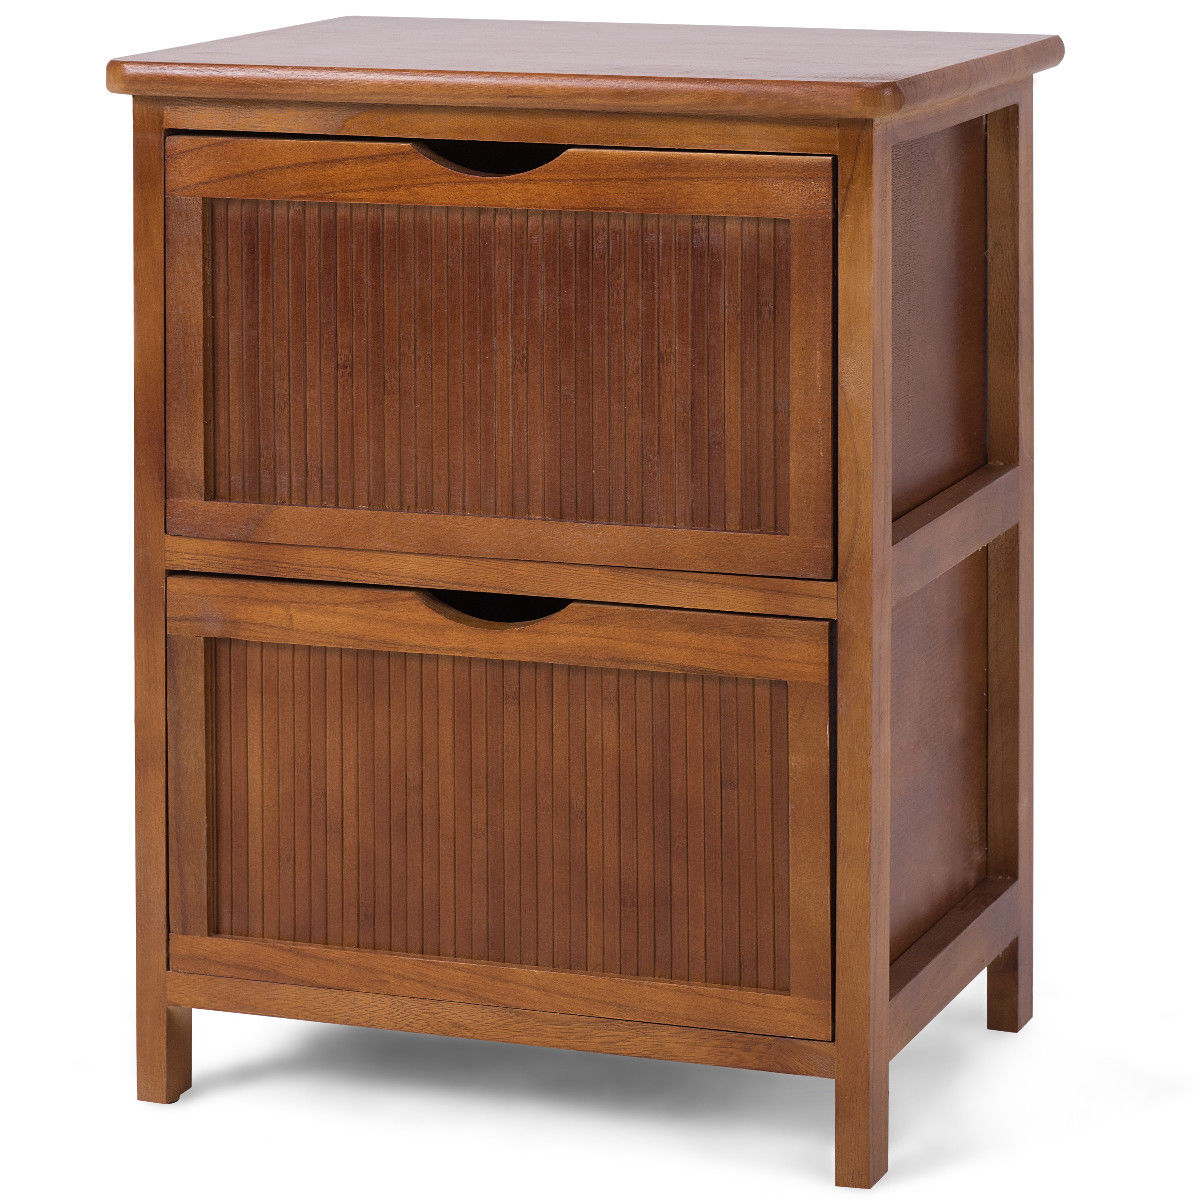 Giantex 2 Drawers Nightstand Contemporary Vintage Bedside Table Solid Wood End Table Bedroom Furniture HW57057